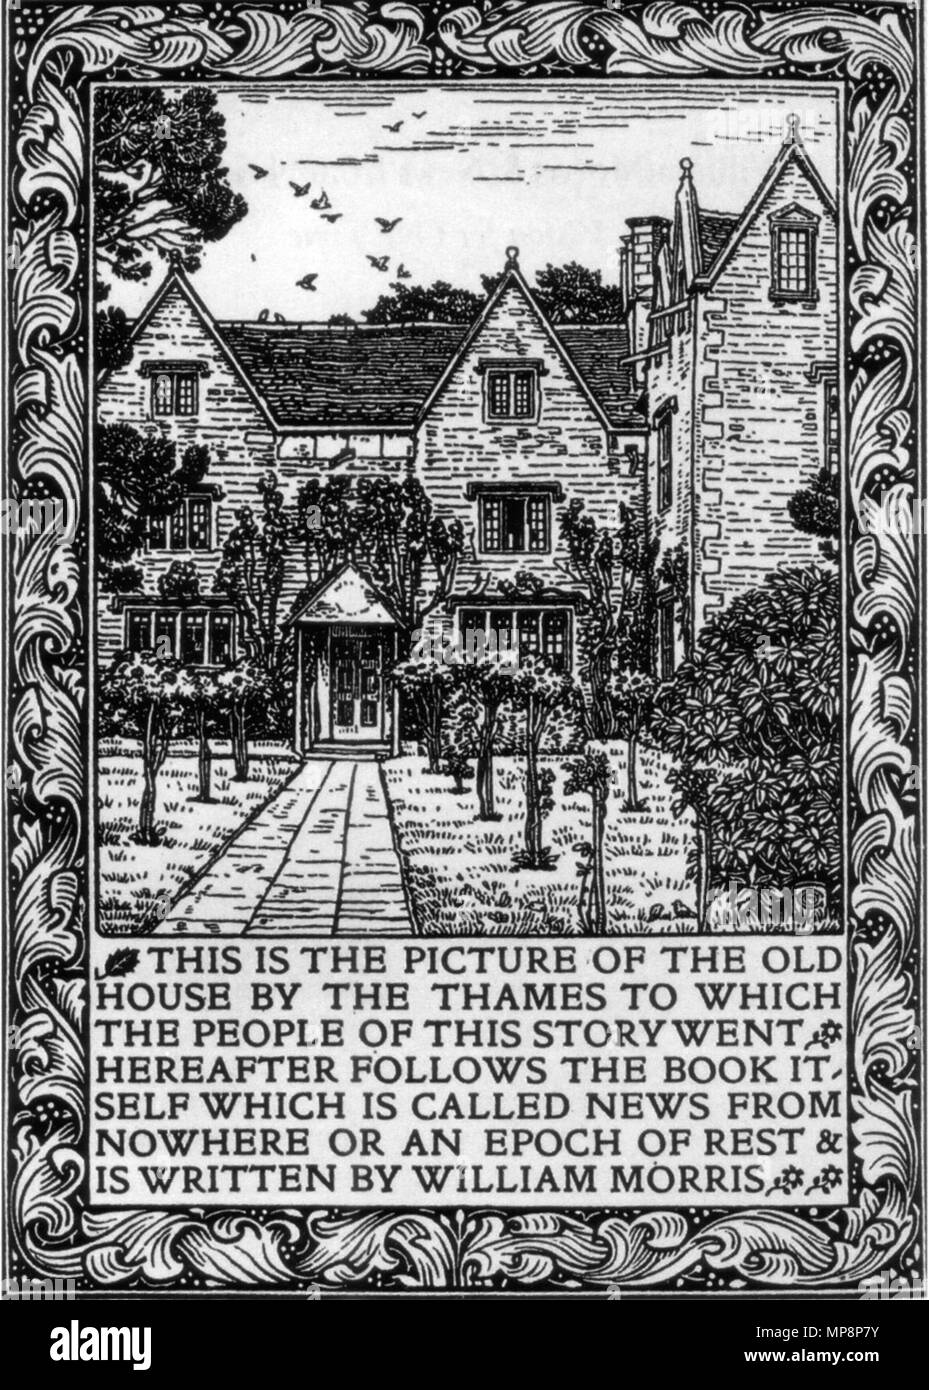 . English: Kelmscott Manor depicted in the frontispiece to the 1893 Kelmscott Press edition of William Morris's News from Nowhere . 1893.   William Morris (1834–1896)   Alternative names William M. Morris  Description British painter, designer, architect and writer  Date of birth/death 24 March 1834 3 October 1896  Location of birth/death Walthamstow (Essex) London-Hammersmith  Work location Deutsch: Südengland English: Southern England  Authority control  : Q182589 VIAF:22146194 ISNI:0000 0001 2123 5747 ULAN:500030629 LCCN:n78095326 NLA:35363838 WorldCat 762 Kelmscott Manor News fro - Stock Image